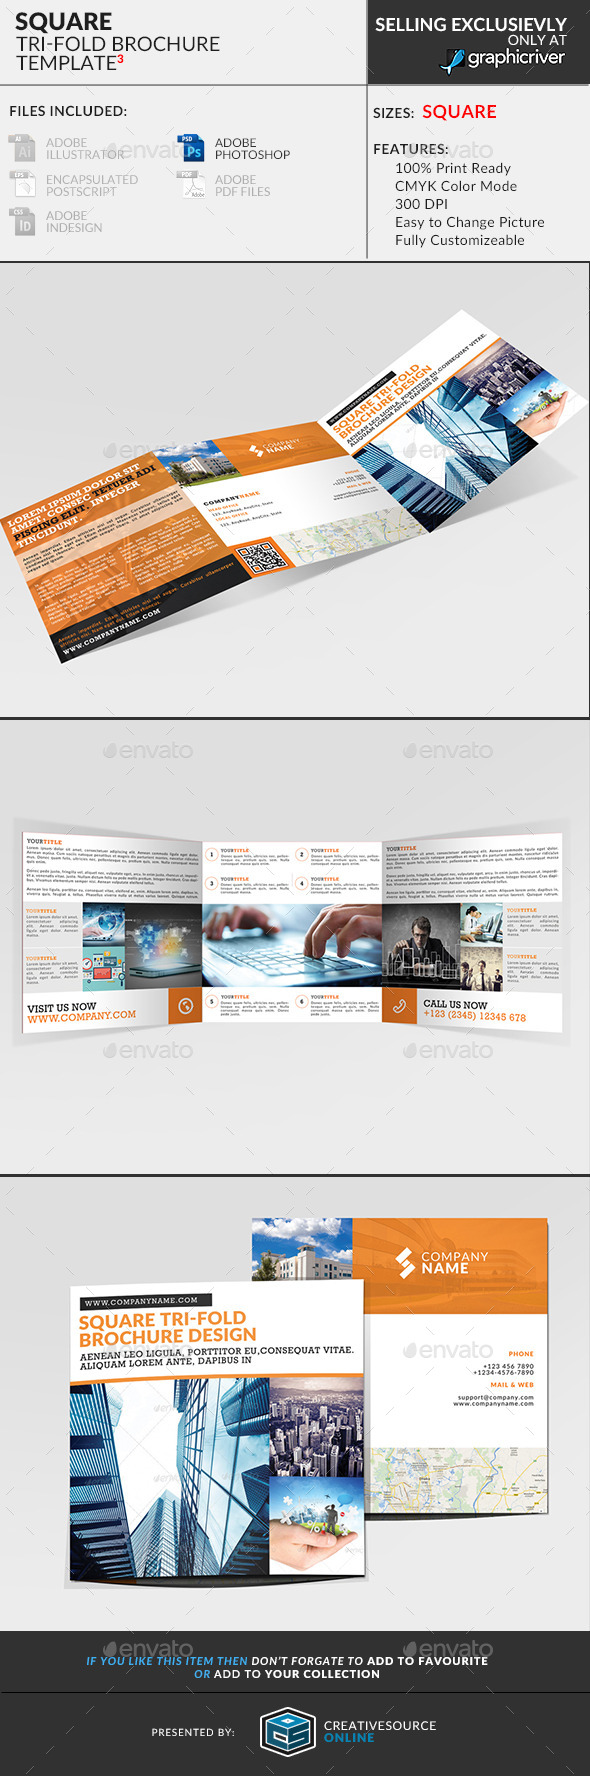 Square Trifold Brochure 3 - Corporate Brochures